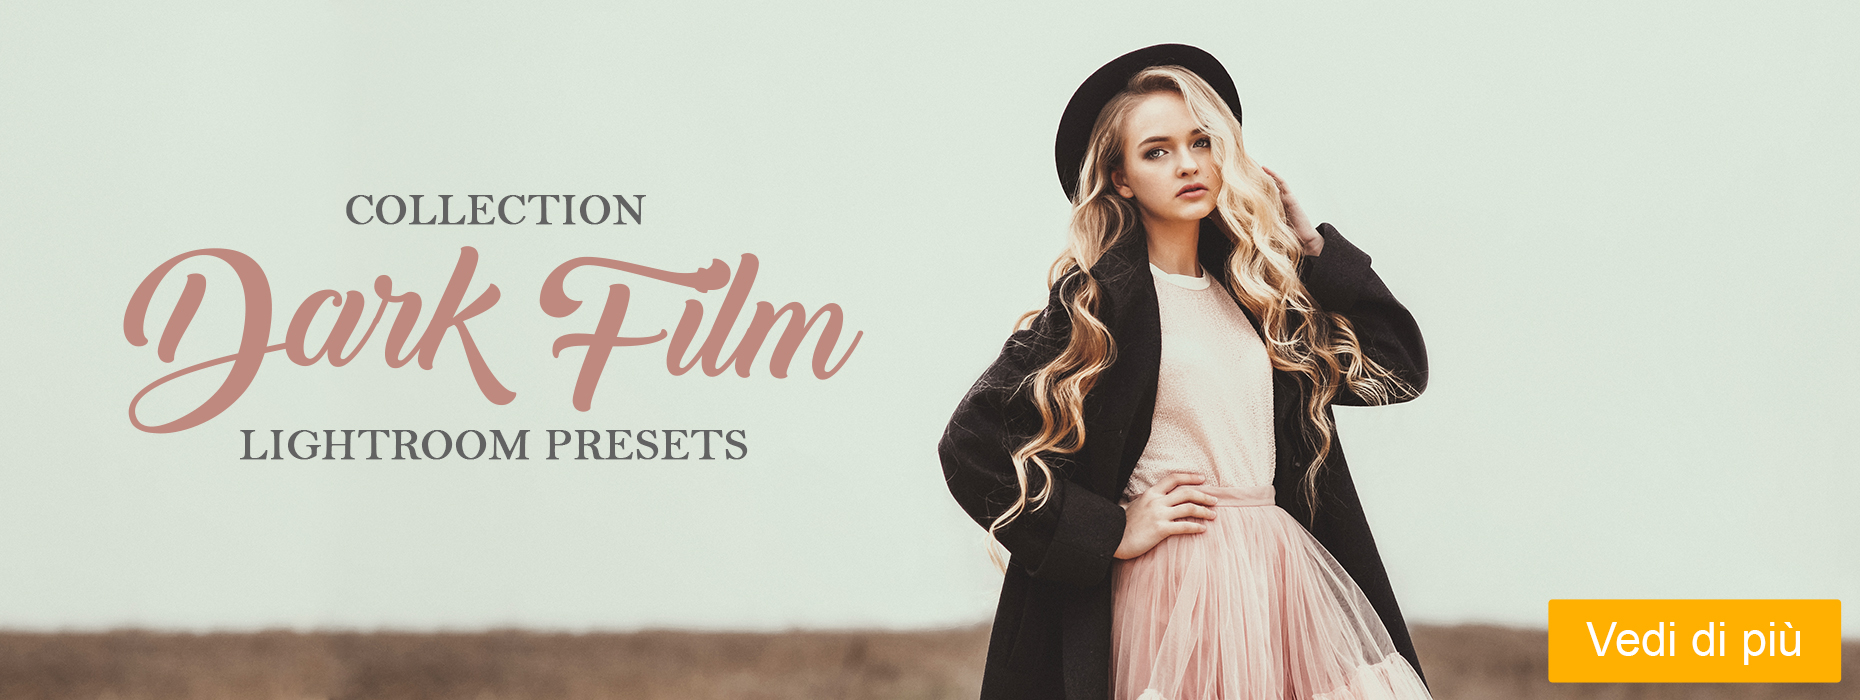 lightroom discoteca gratis dark film